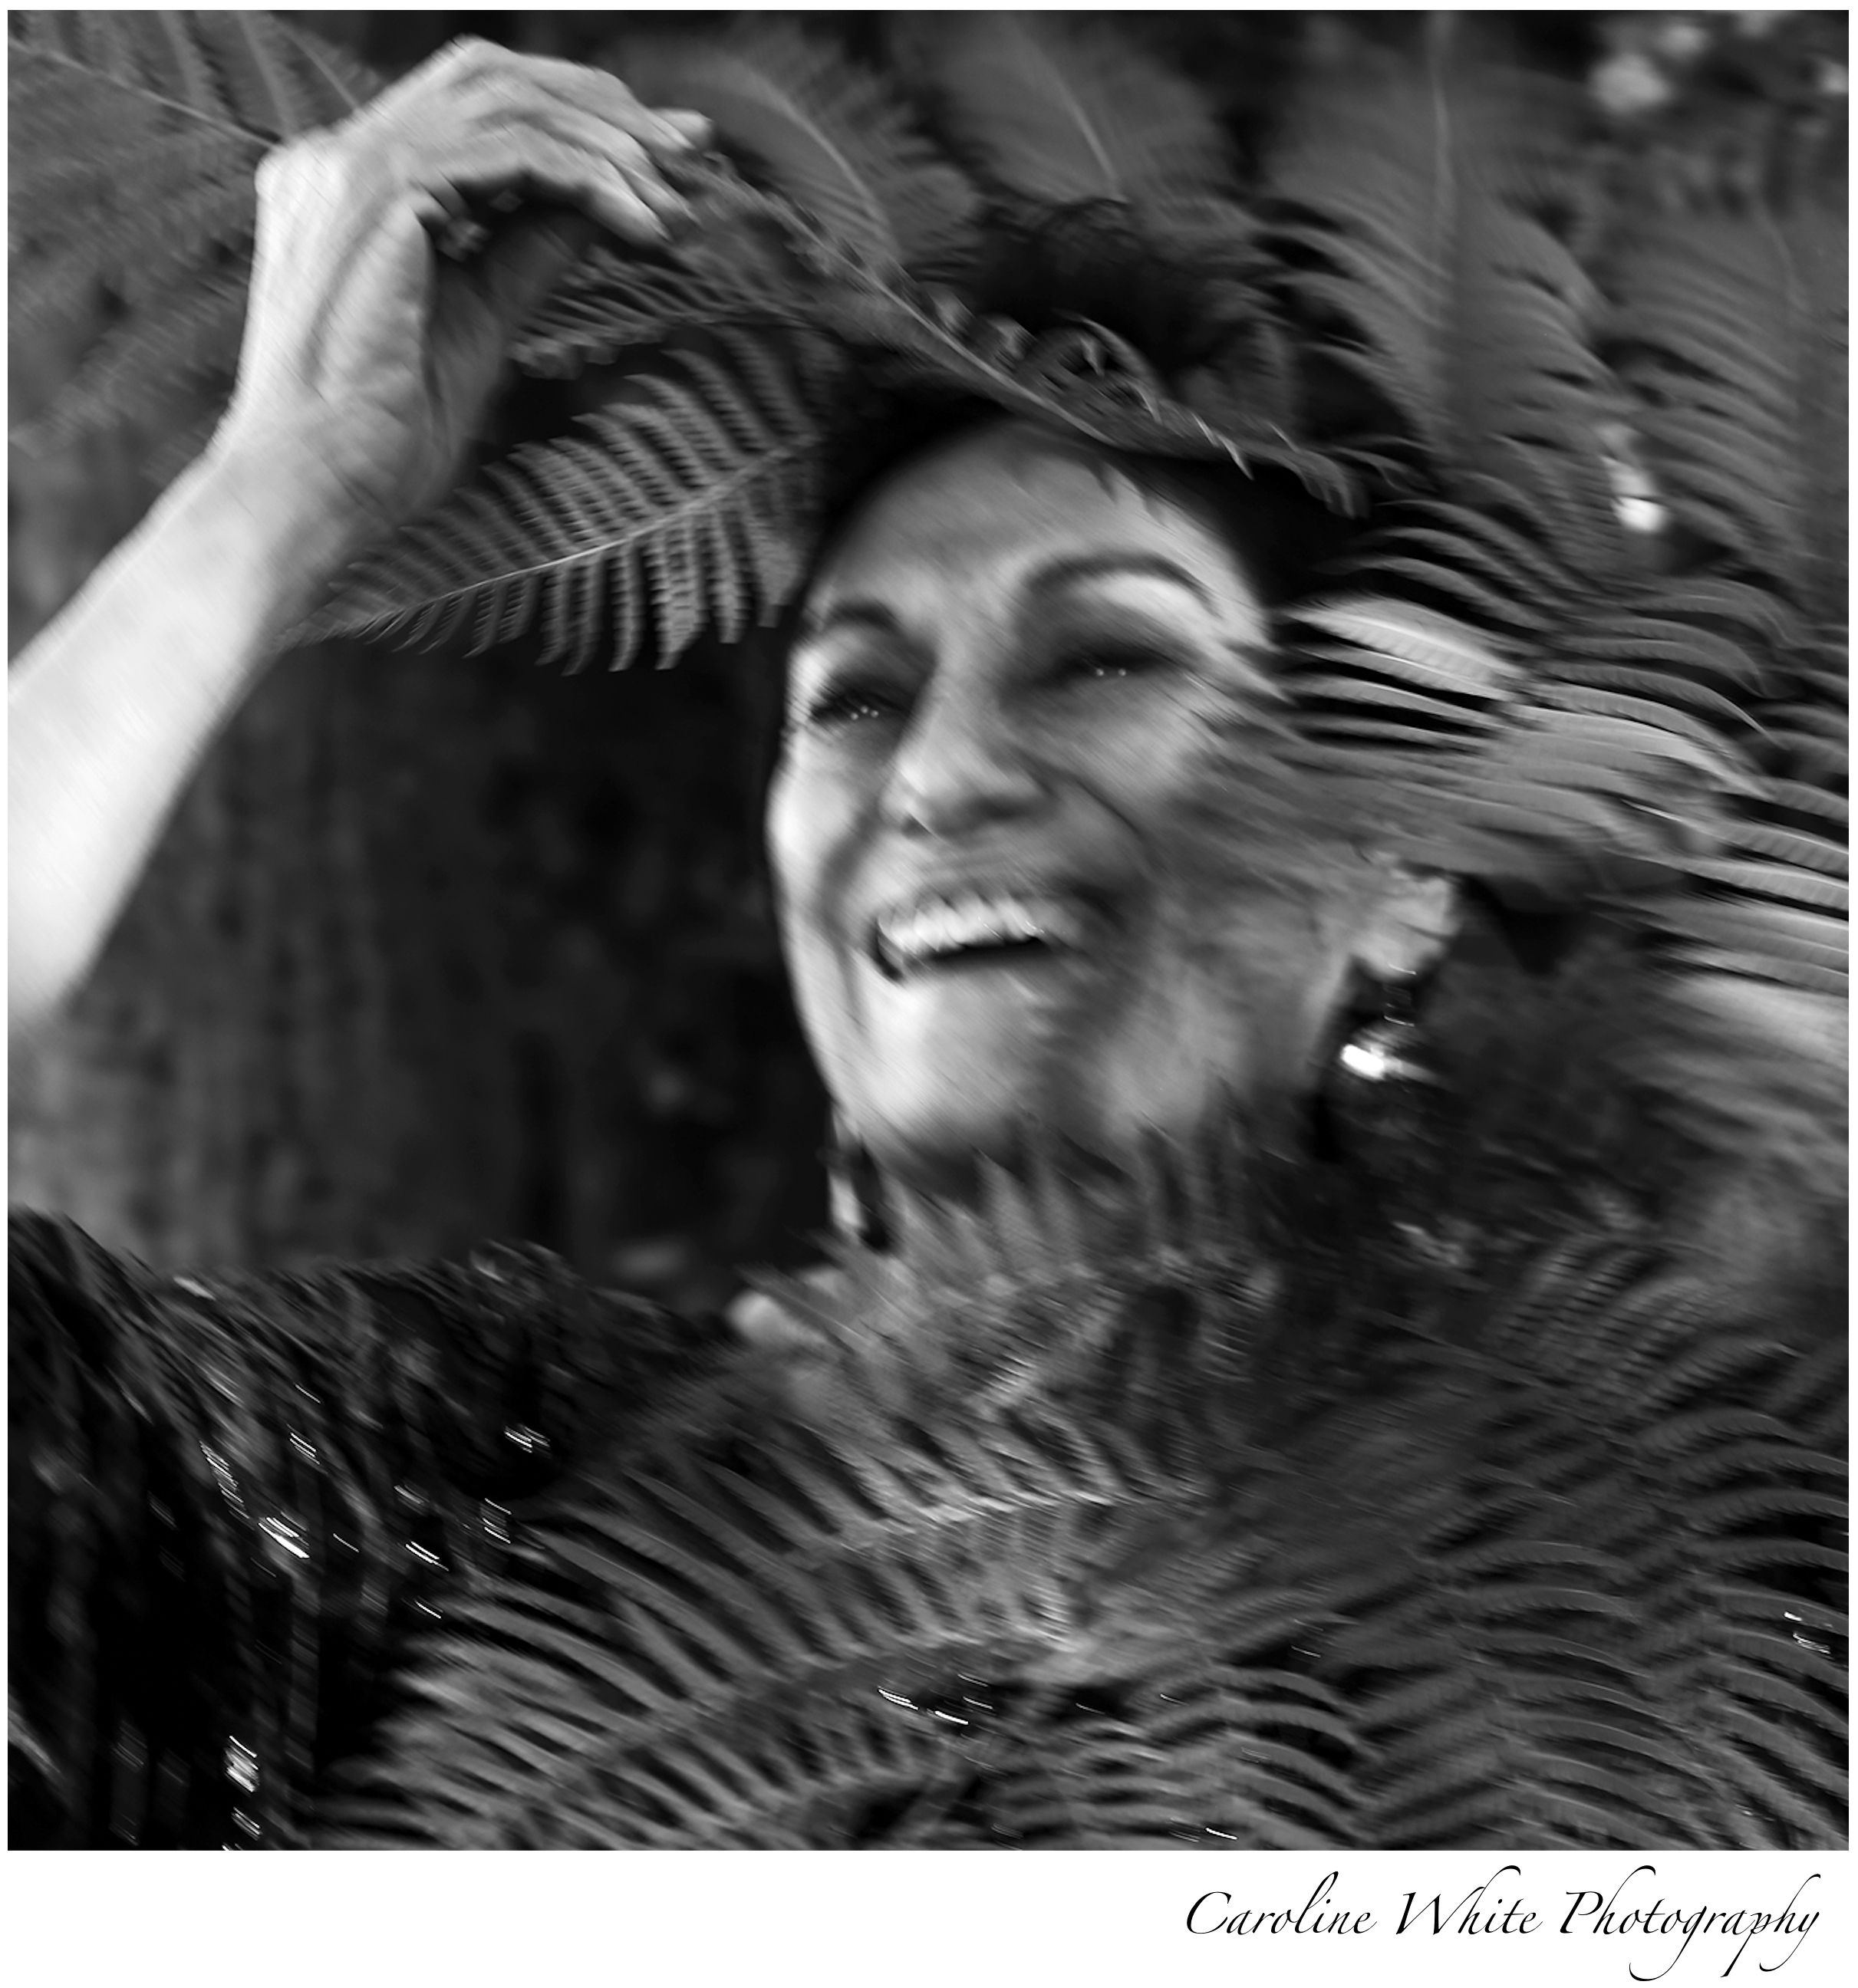 Nature meets luxury vogue vanity fair style women over 50 women over 60 iconic black and white creative photoshoot motion blur natural laughter